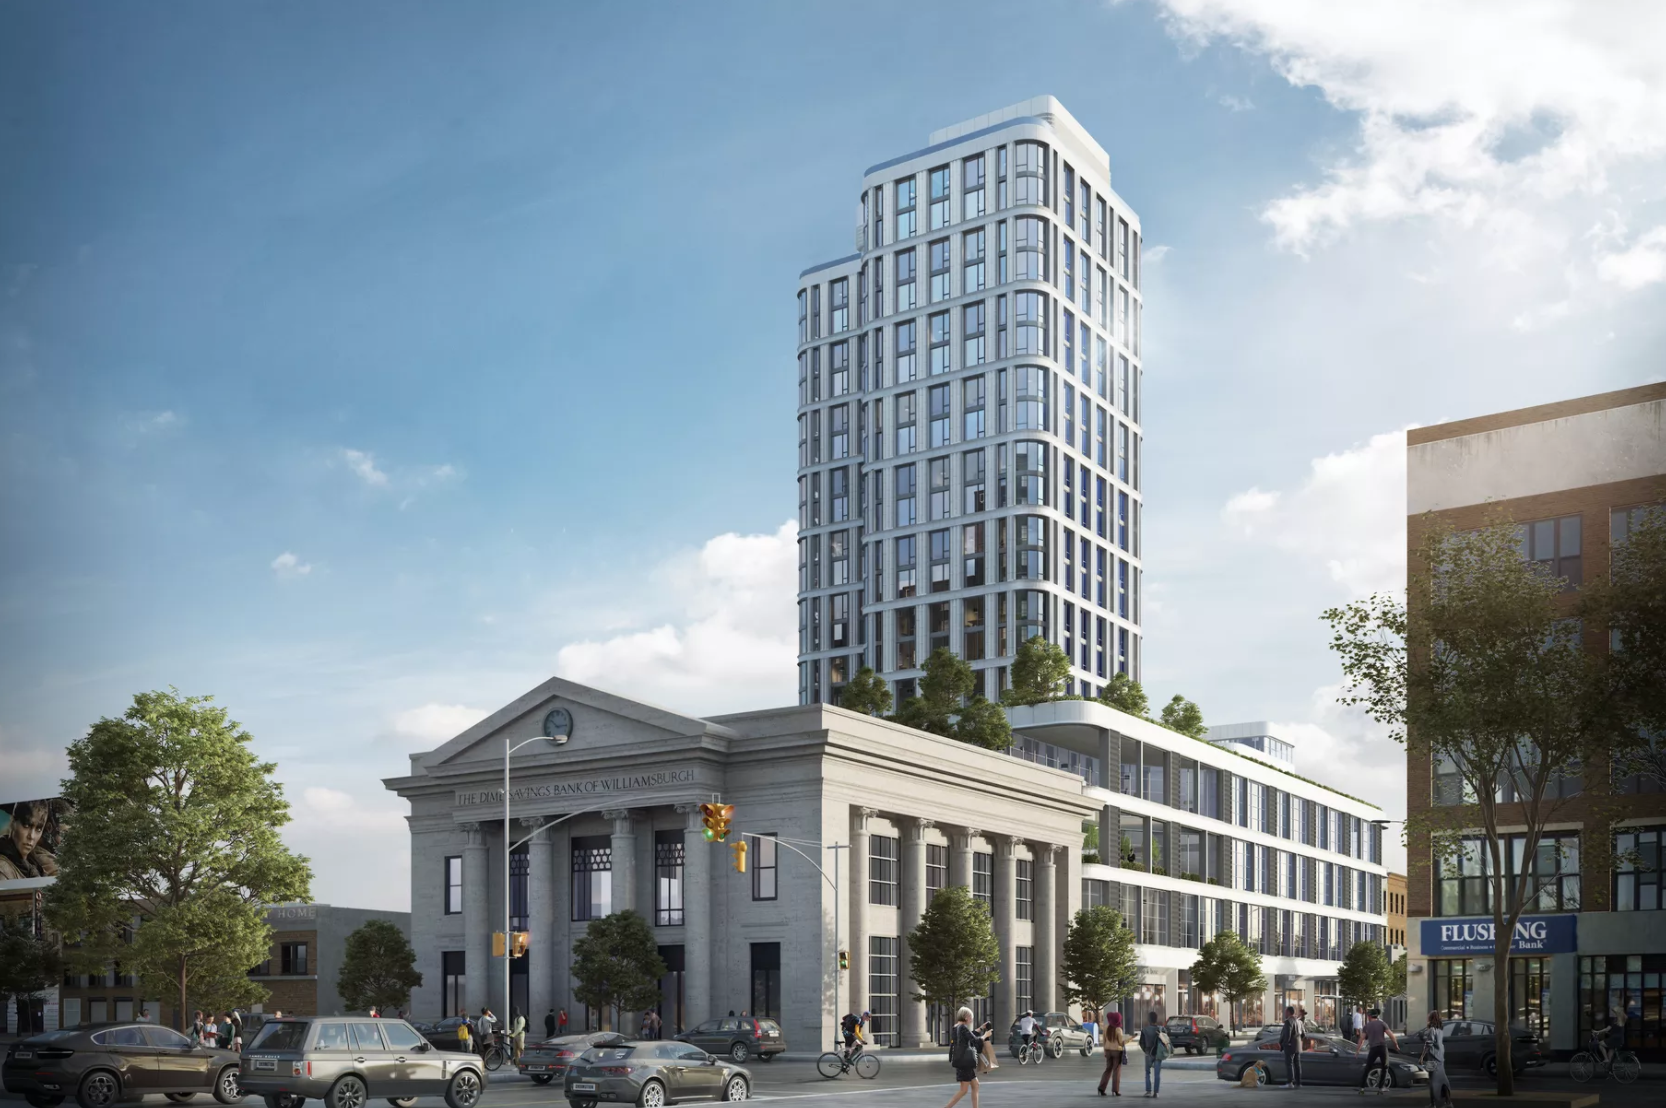 Foundation Work Begins On The Fogarty Finger Architects-Designed The Dime In Williamsburg